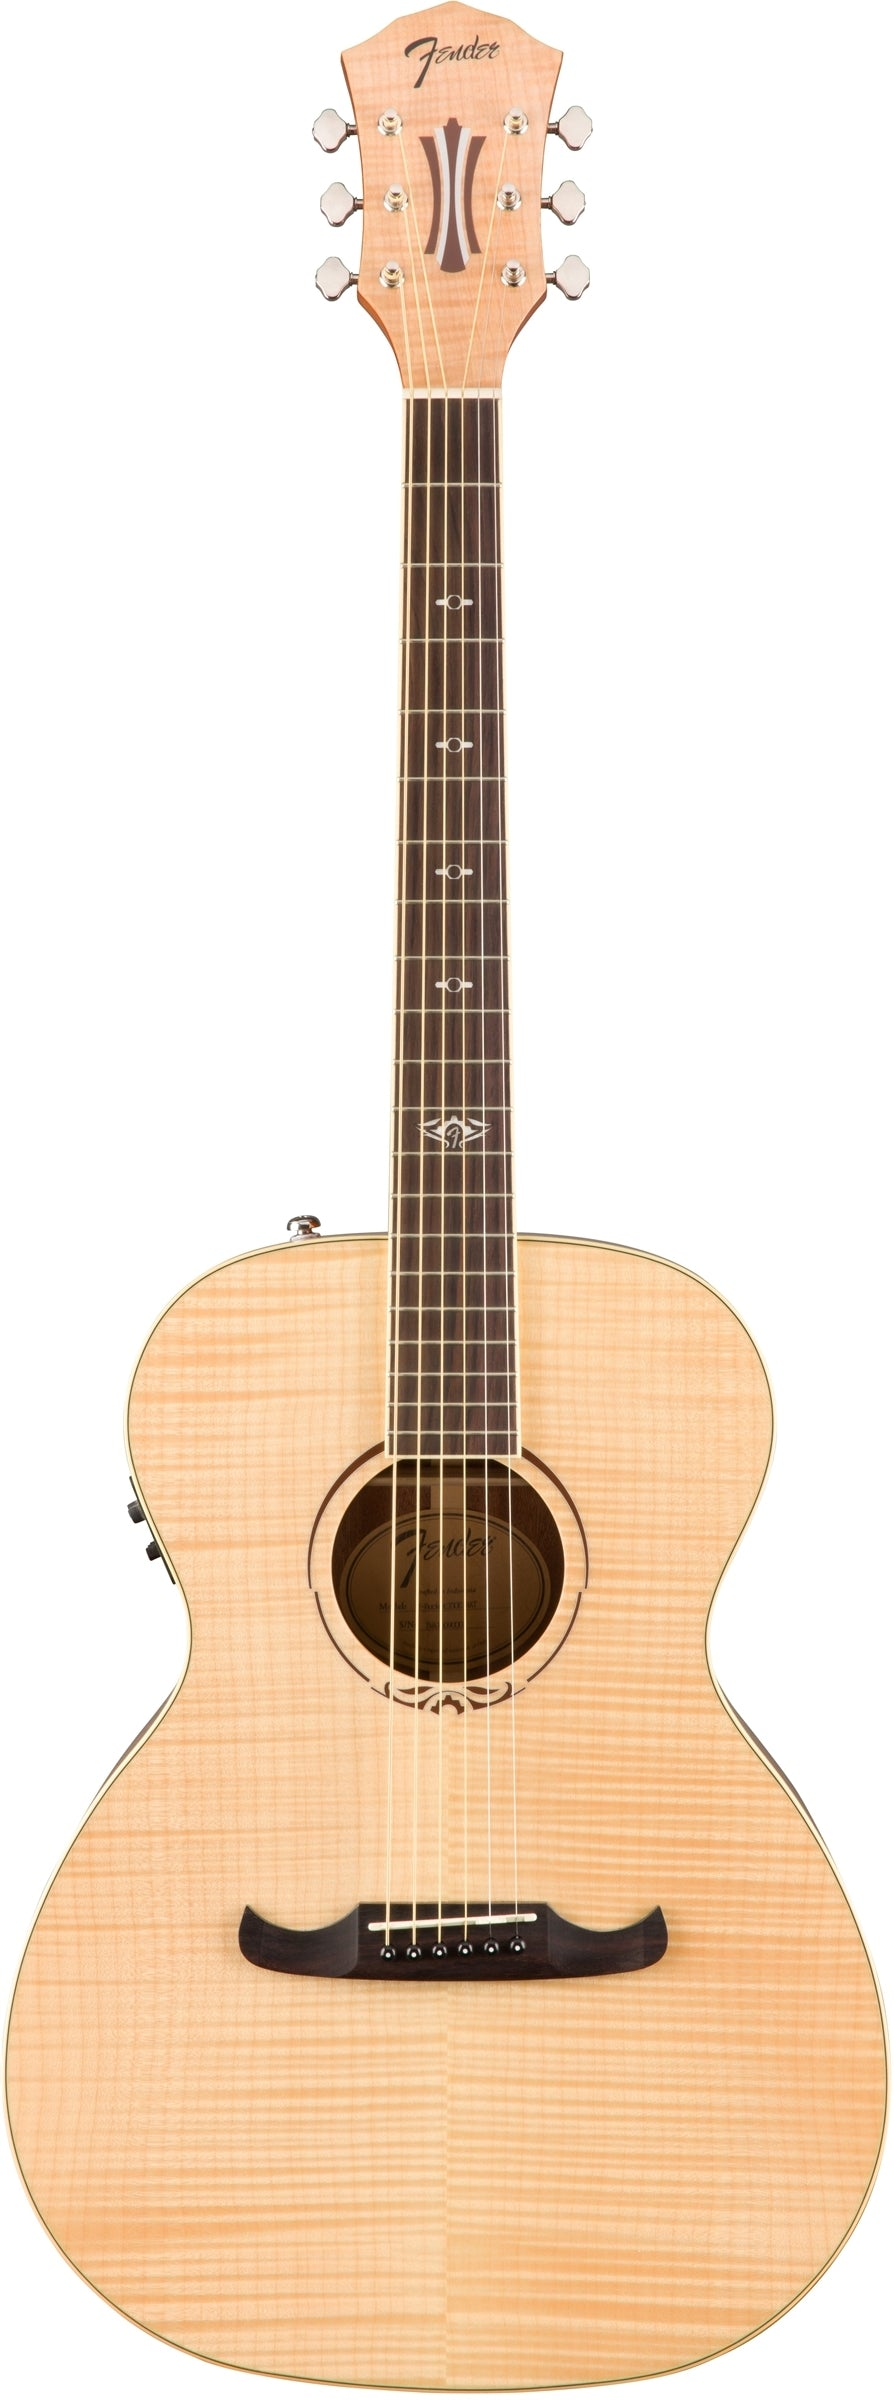 Fender T-Bucket 350E Concert Style Acoustic Electric Guitar - Natural